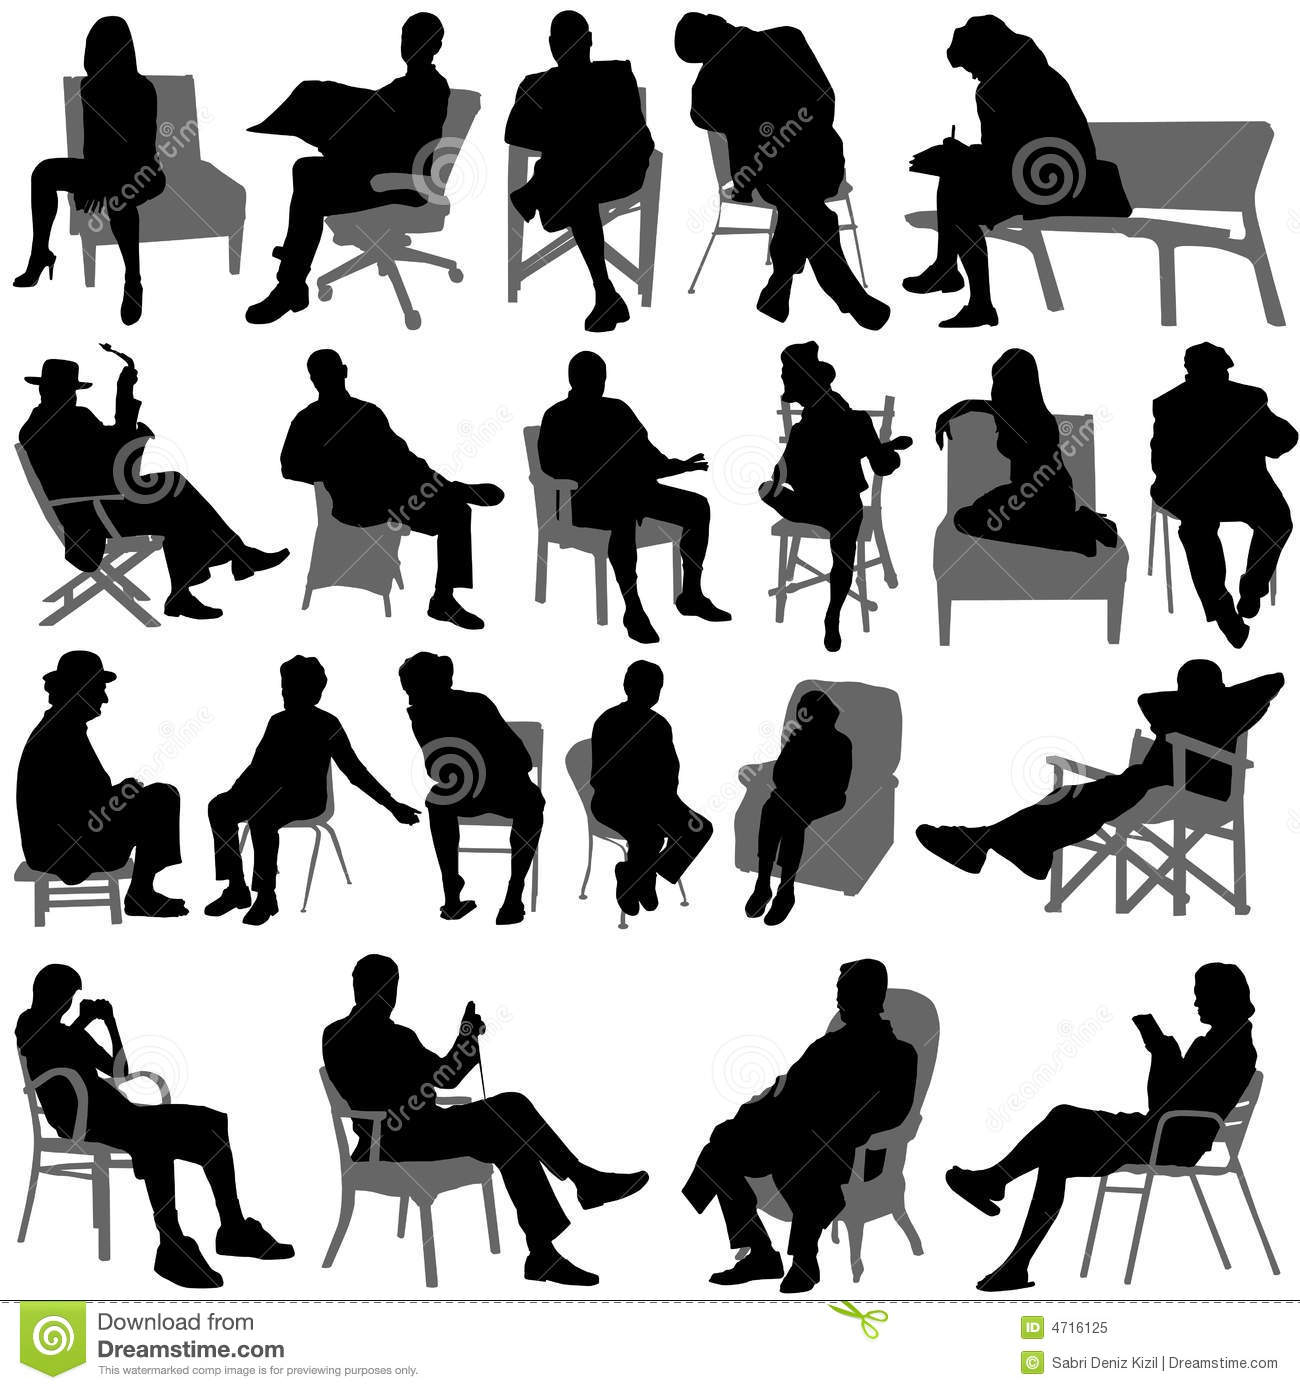 19 Vector People Sitting Images